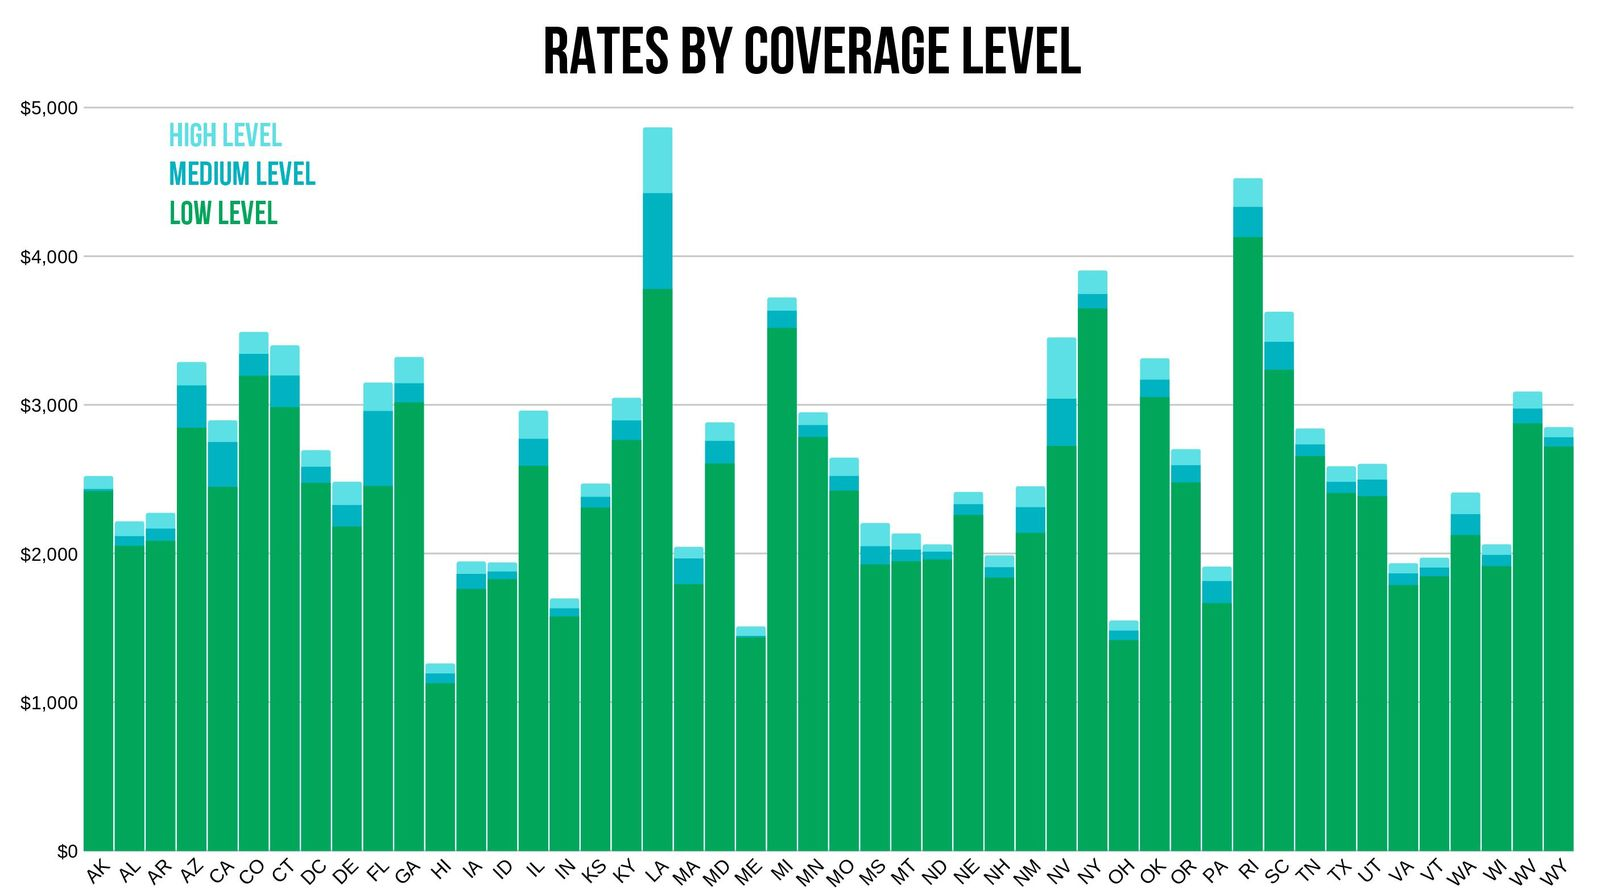 USAA rates depending on coverage level